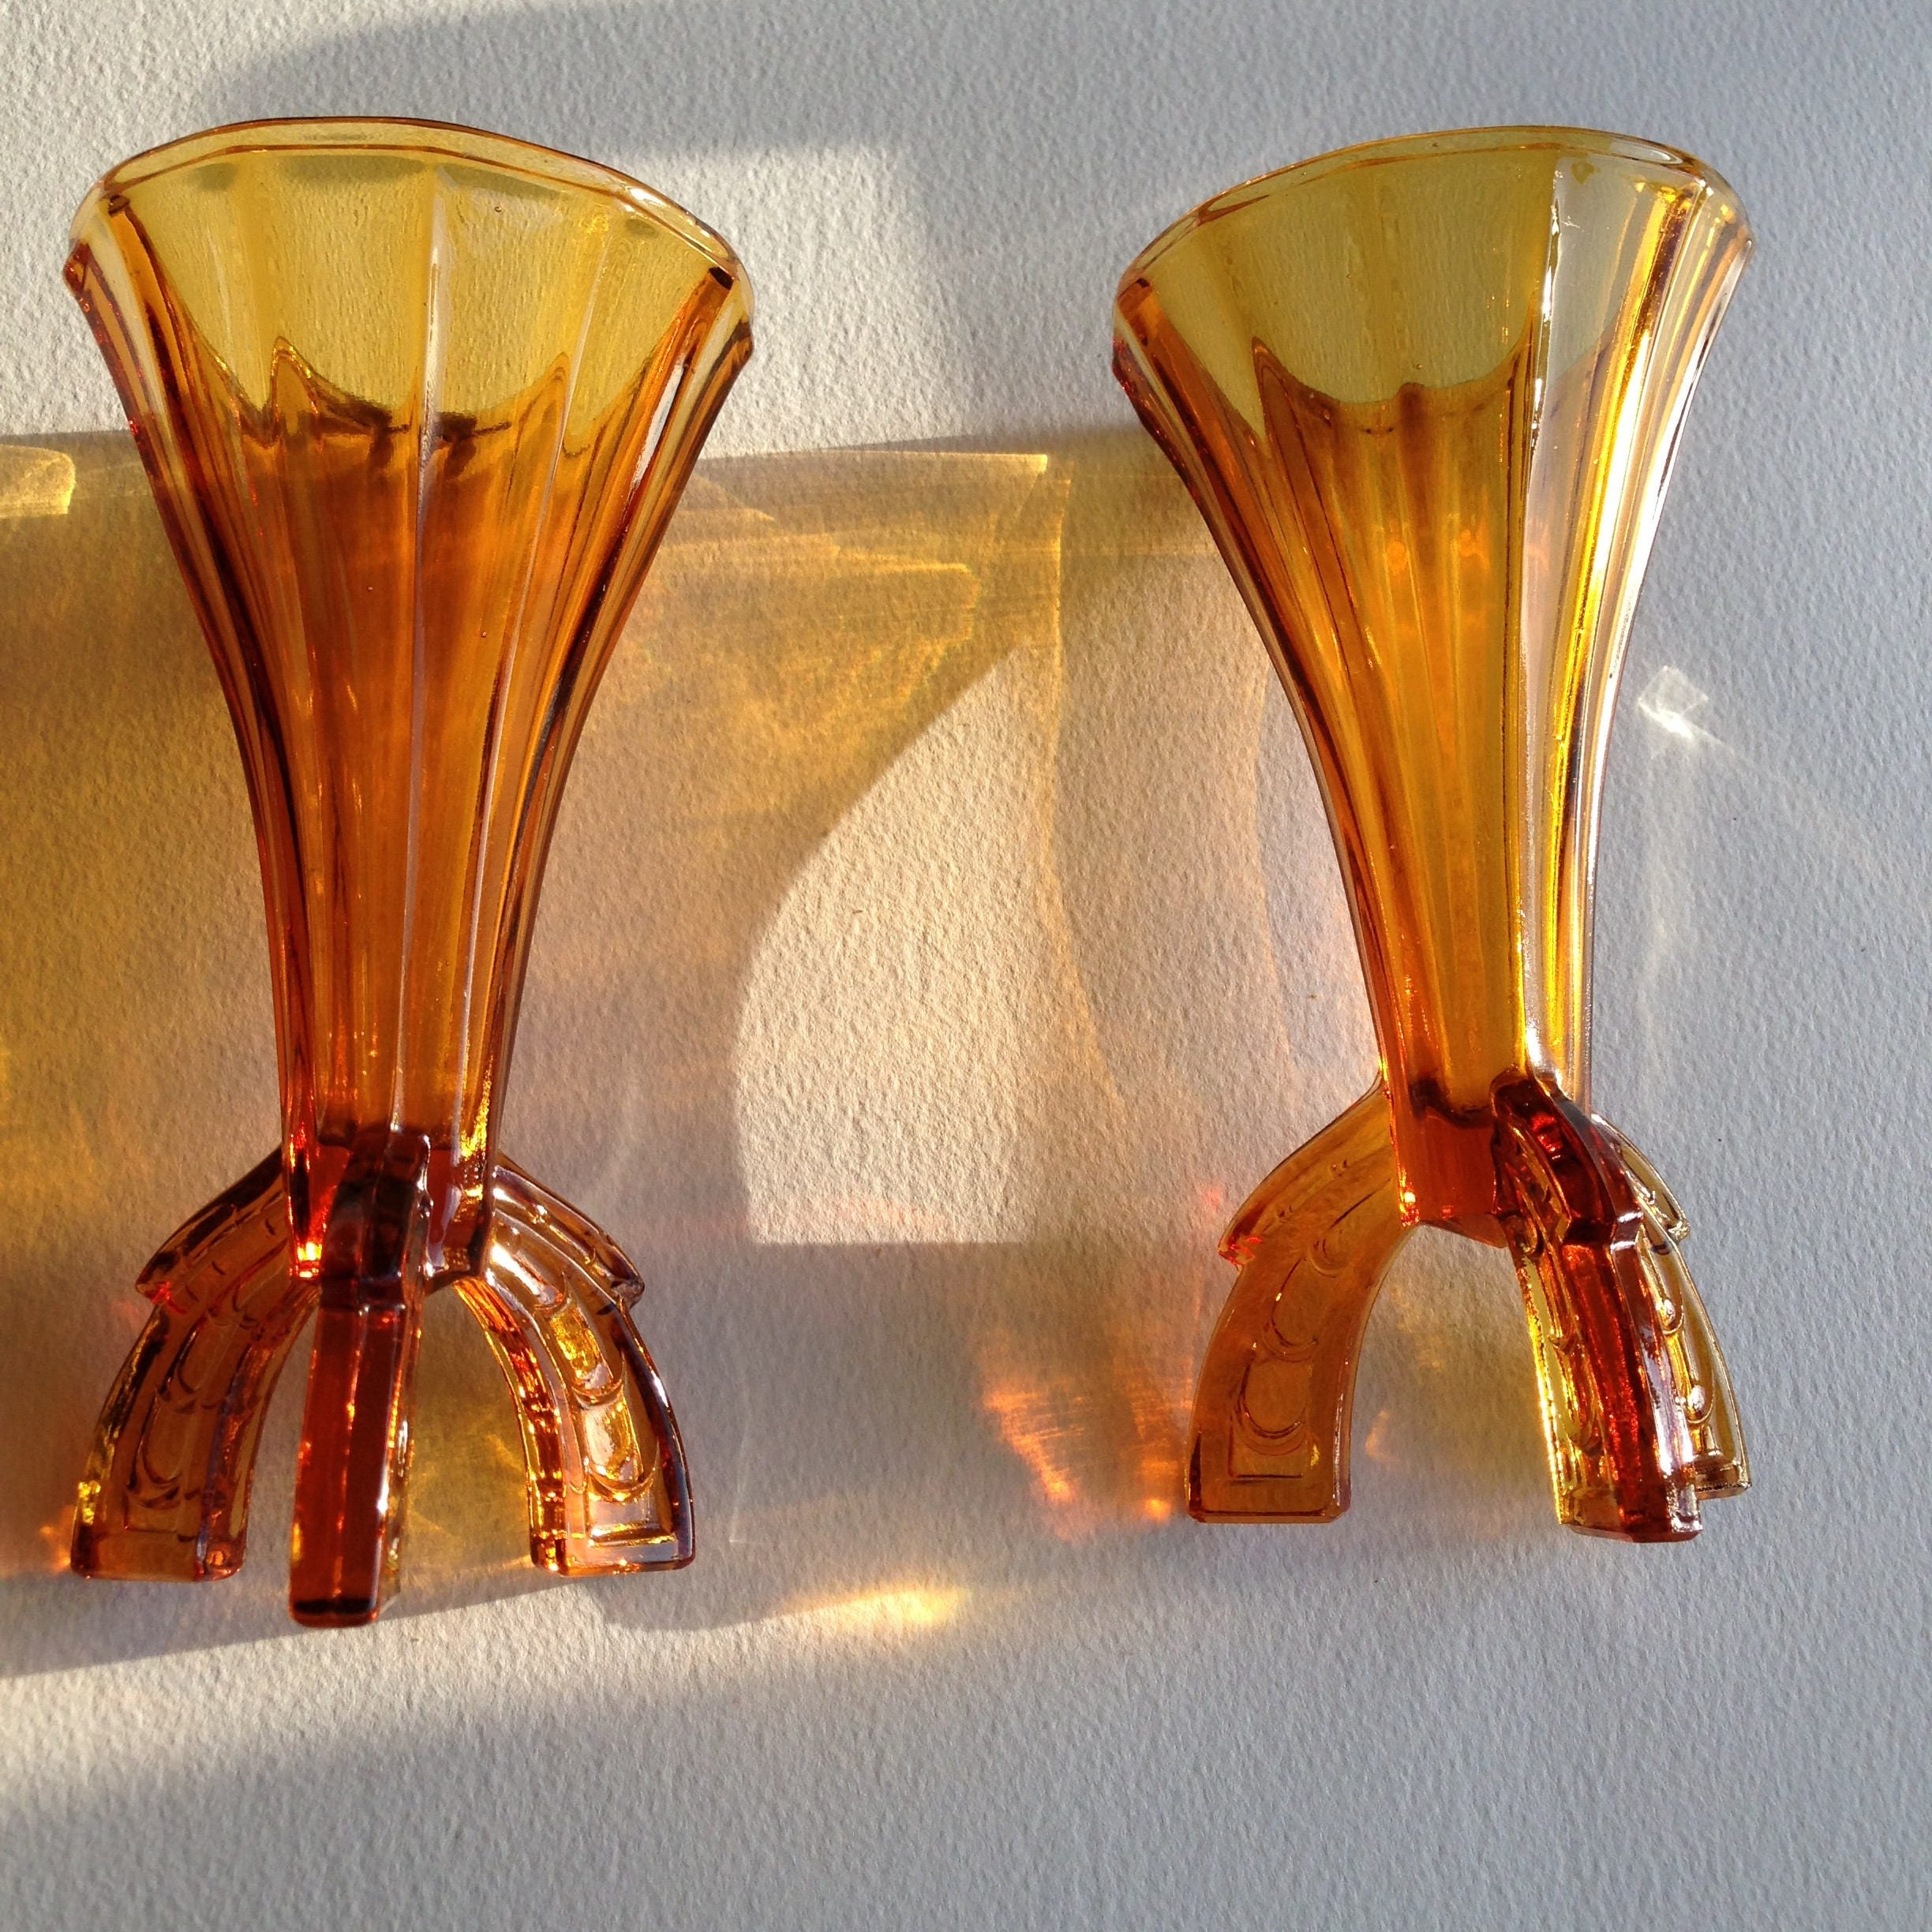 Pair of art deco amber depression glass vase three legged fluted pair of art deco amber depression glass vase three legged fluted vases reviewsmspy